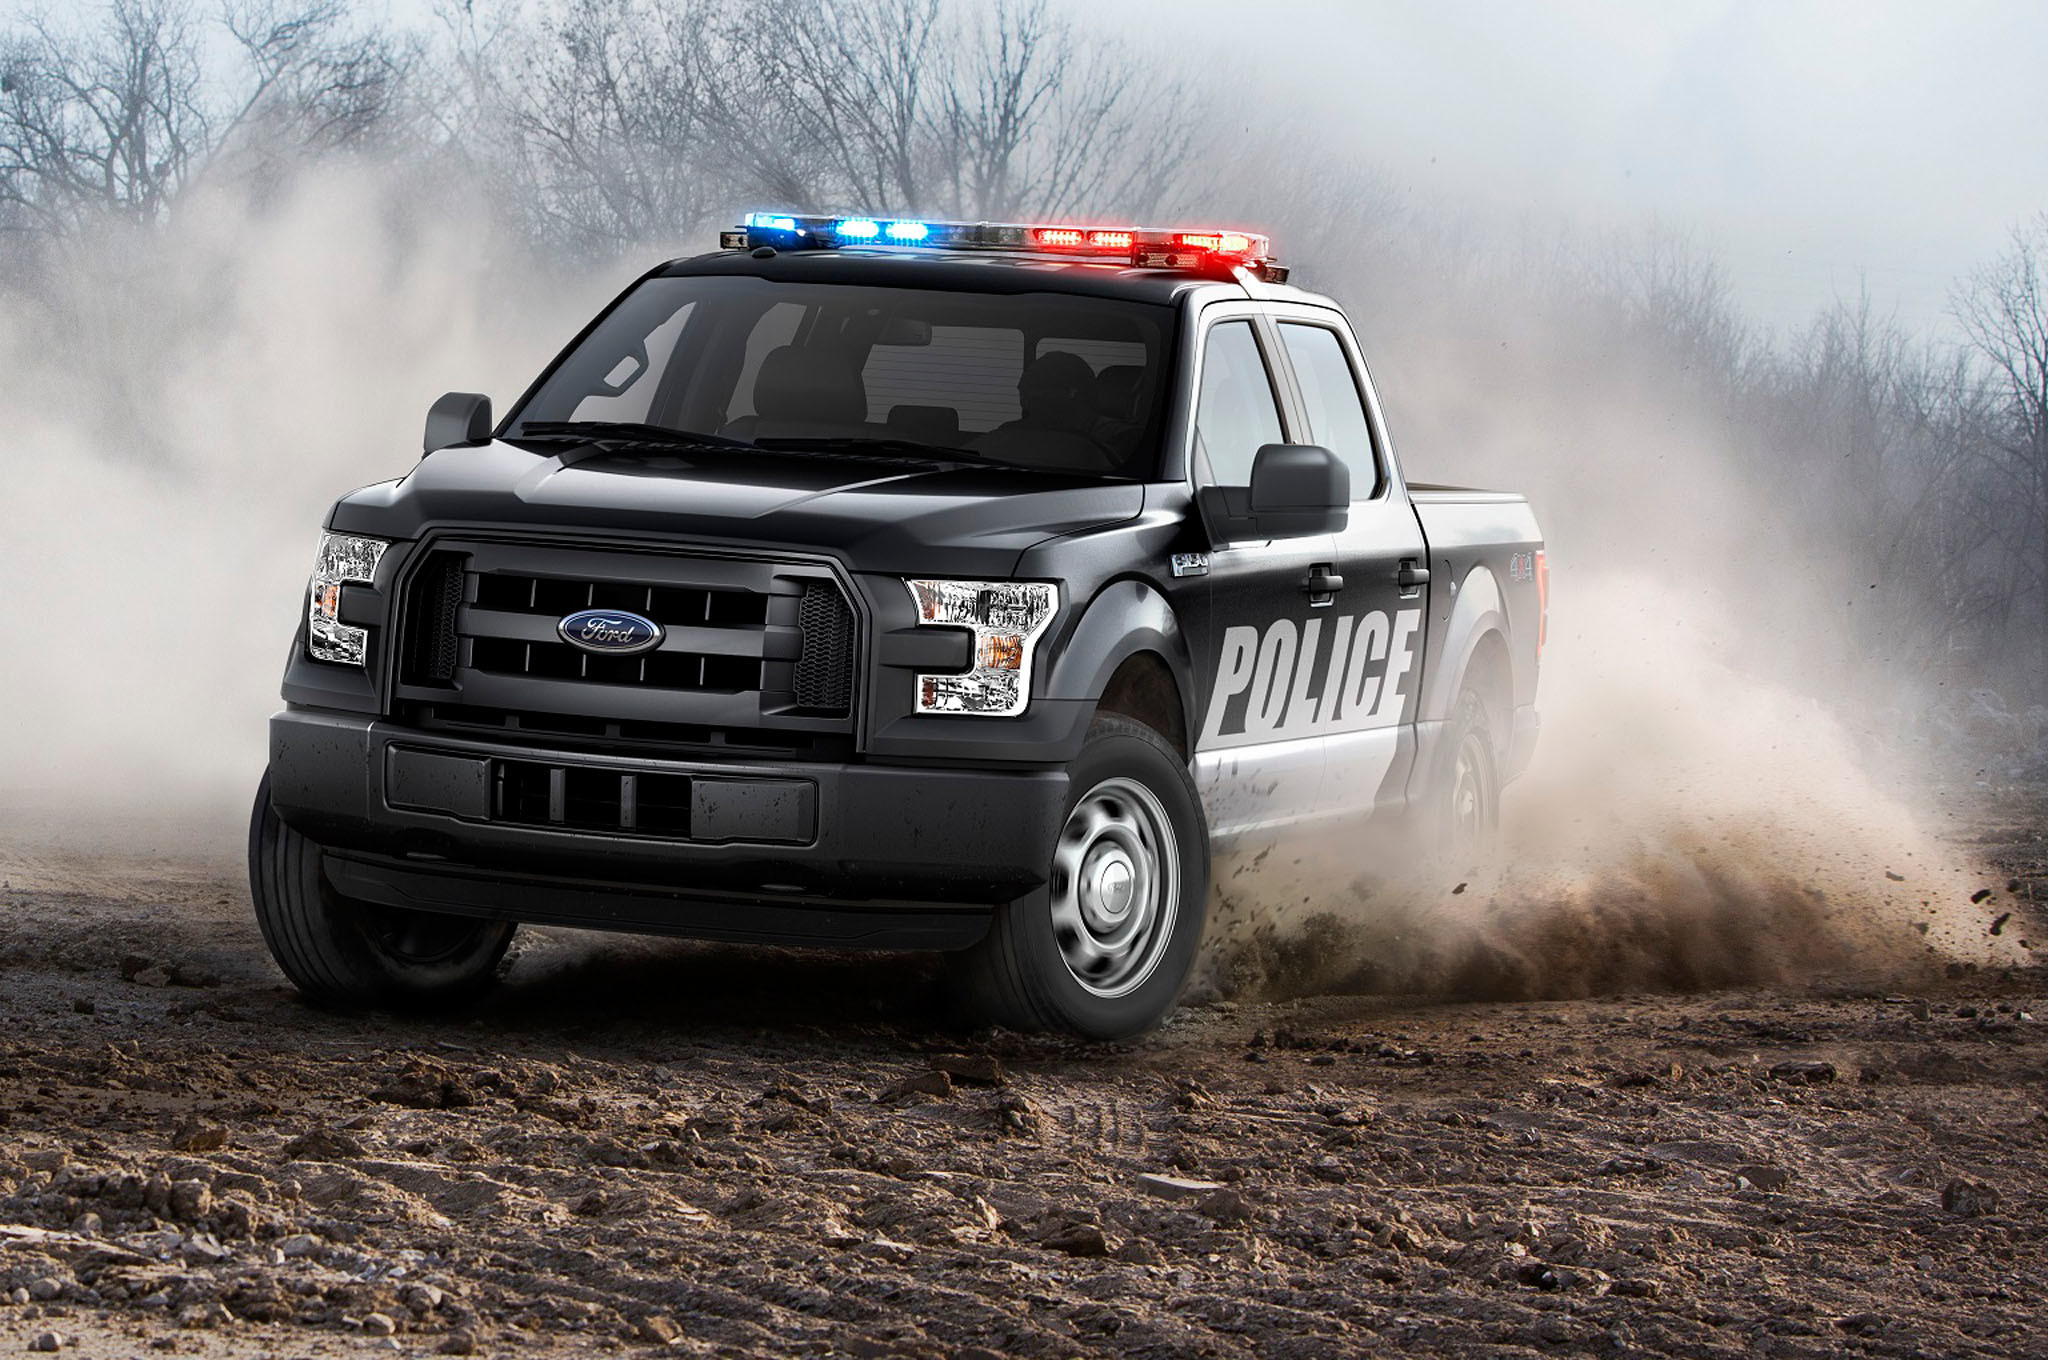 2016 Ford F-150 Police Background Wallpaper